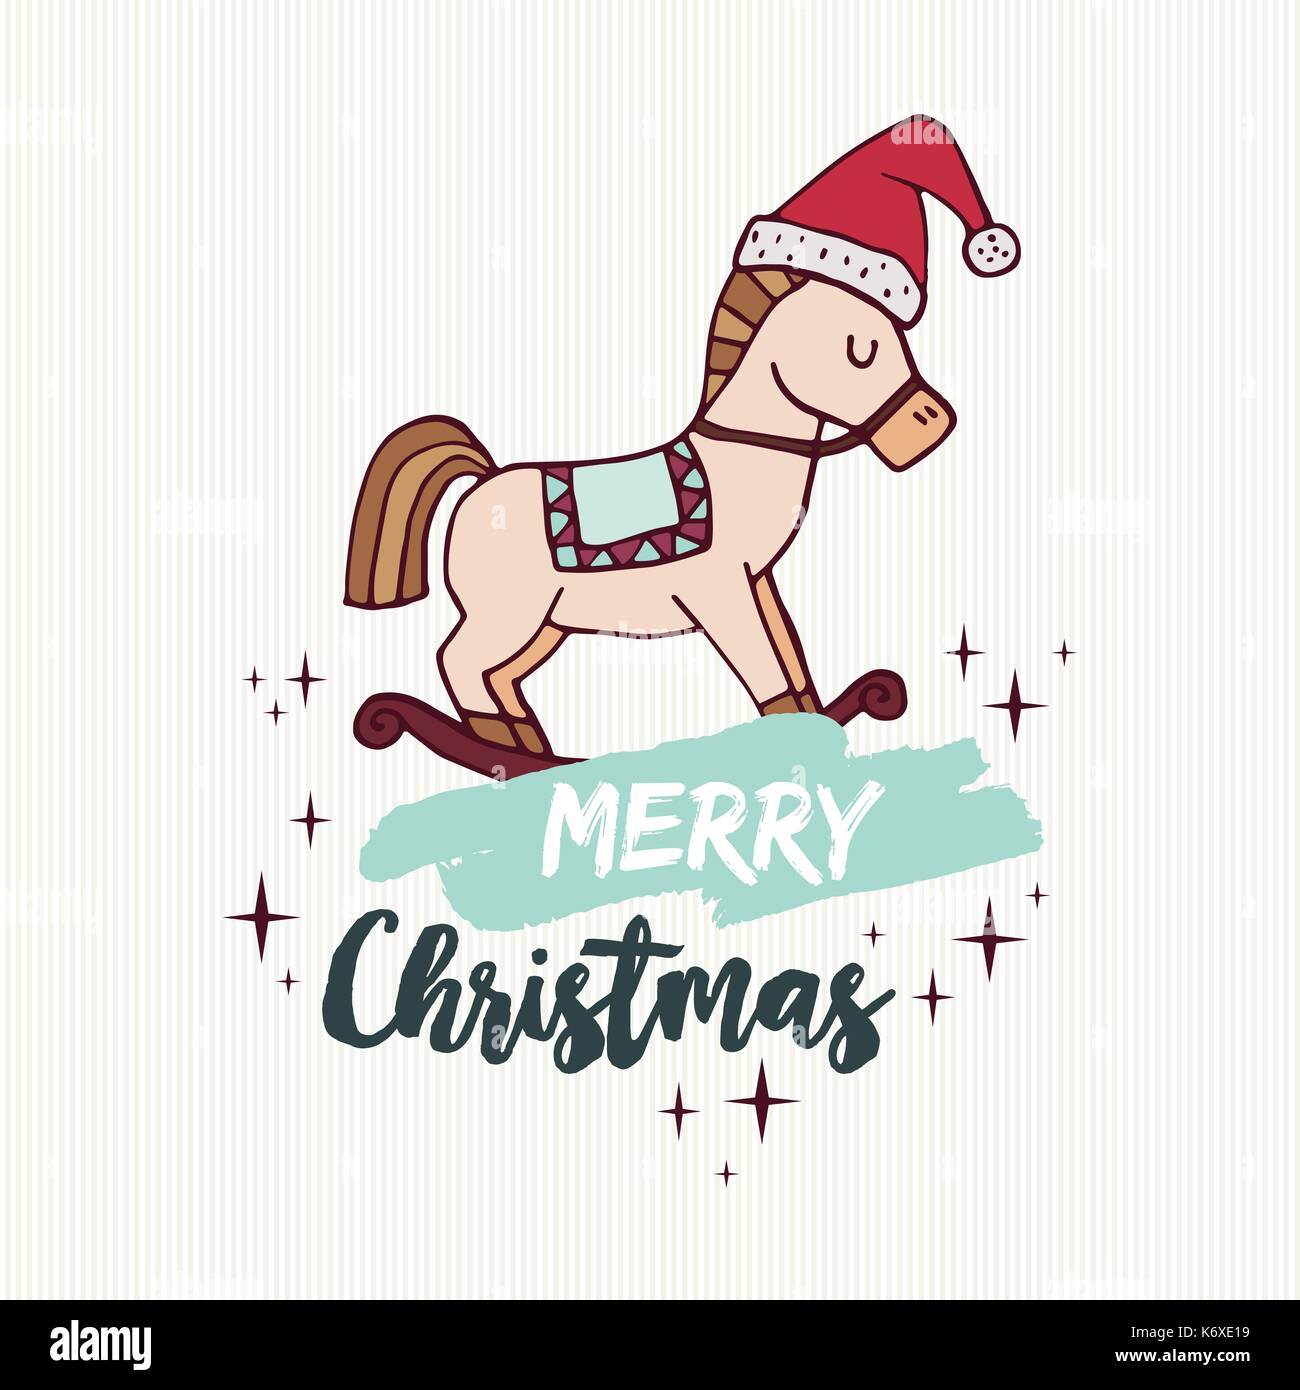 Merry Christmas Hand Drawn Greeting Card Cute Rocking Horse Toy In Stock Vector Image Art Alamy